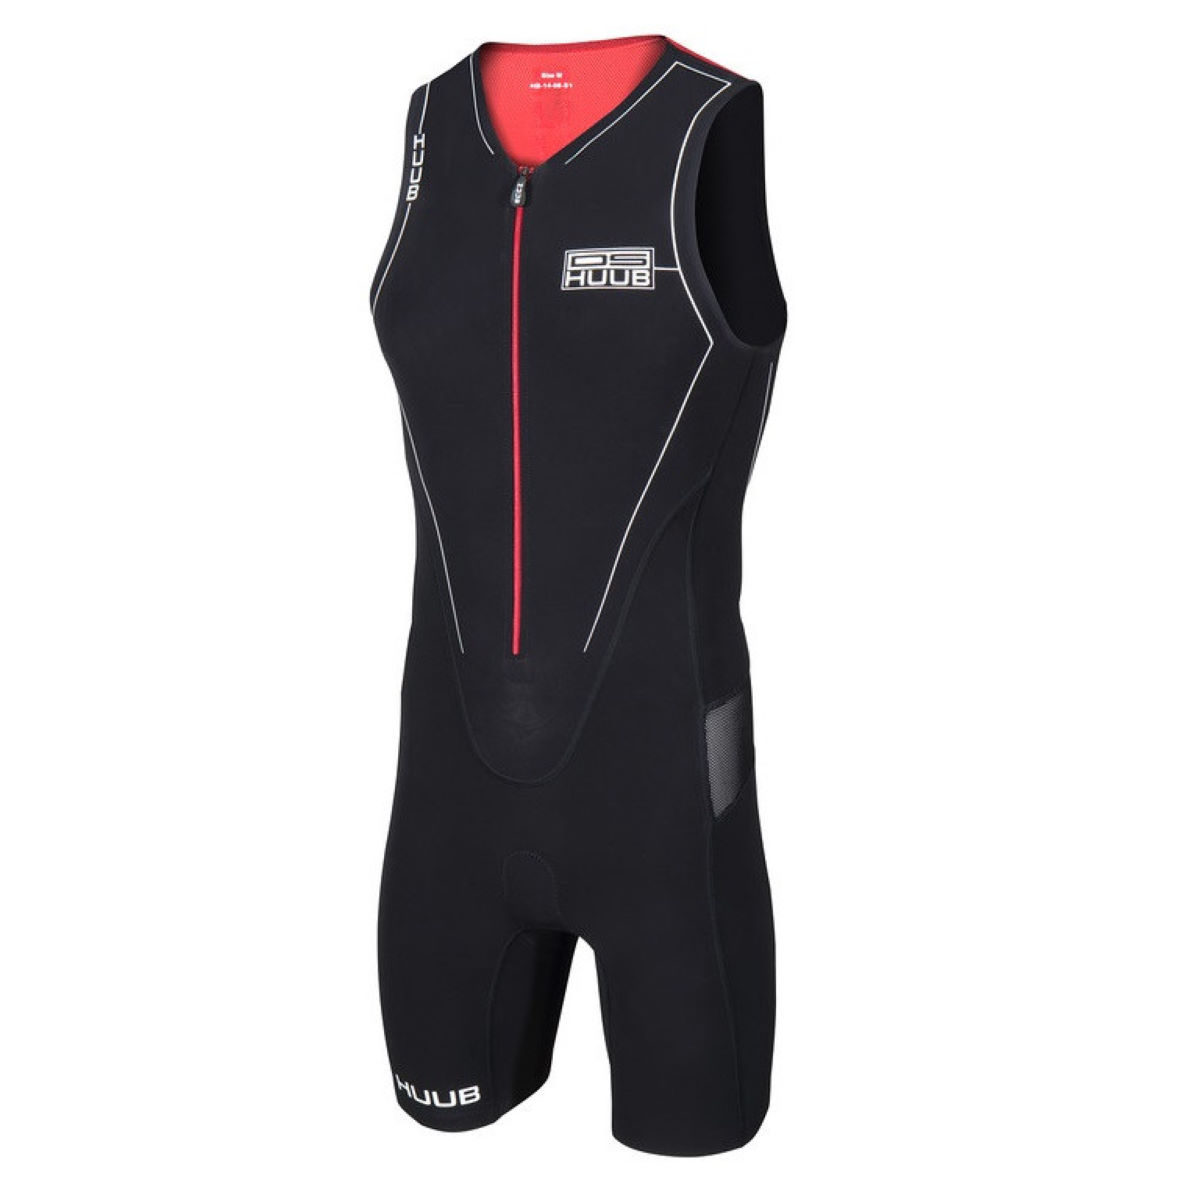 HUUB DS Triathlondräkt - Herr - Medium Black / White / Red